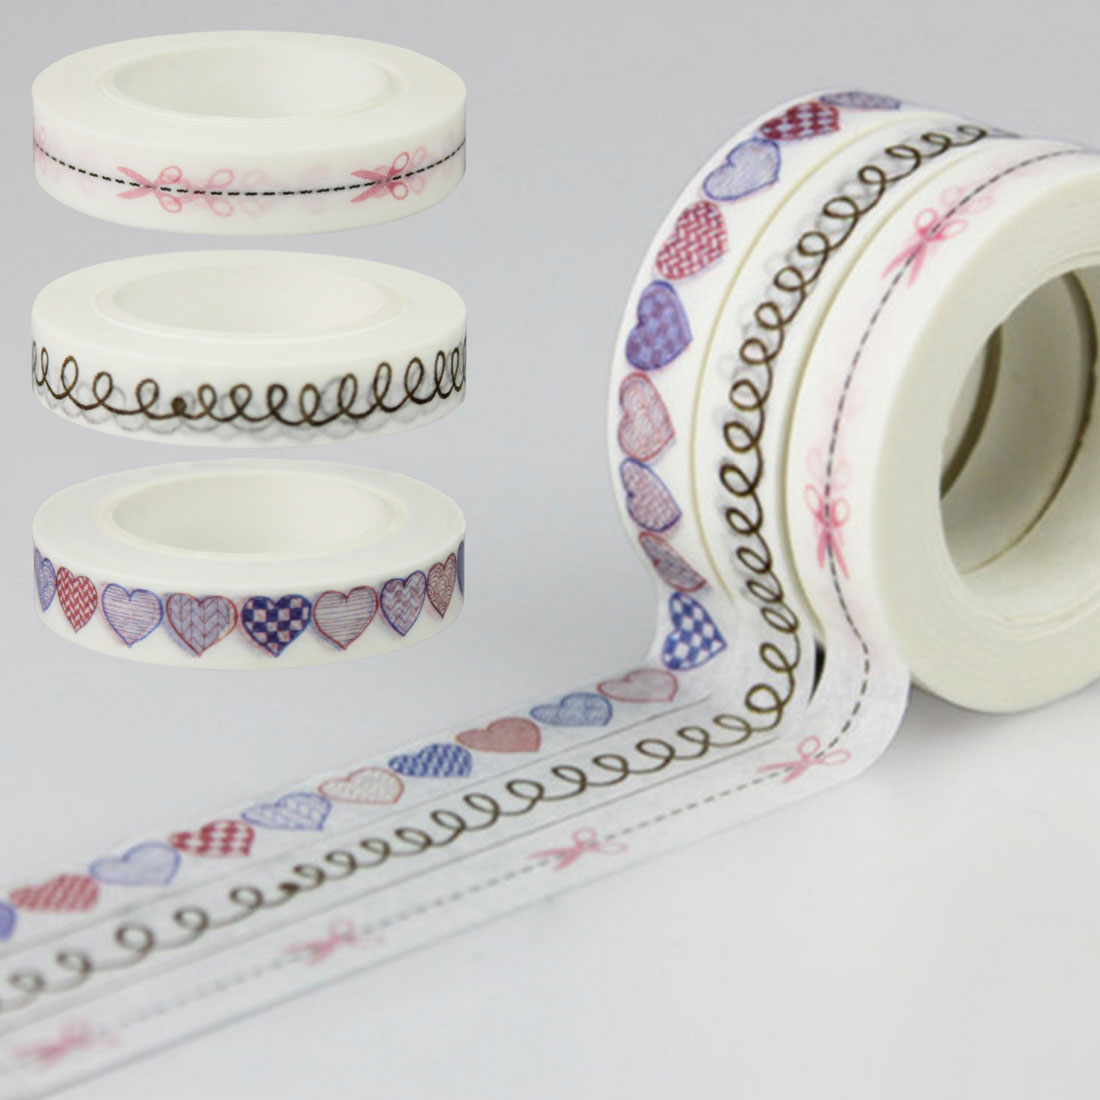 8mm*10m Cute Lot Kawaii Decorative Washi Tape Writing Hand Tear Tape DIY Scrapbooking Masking Tapes School Office Supply